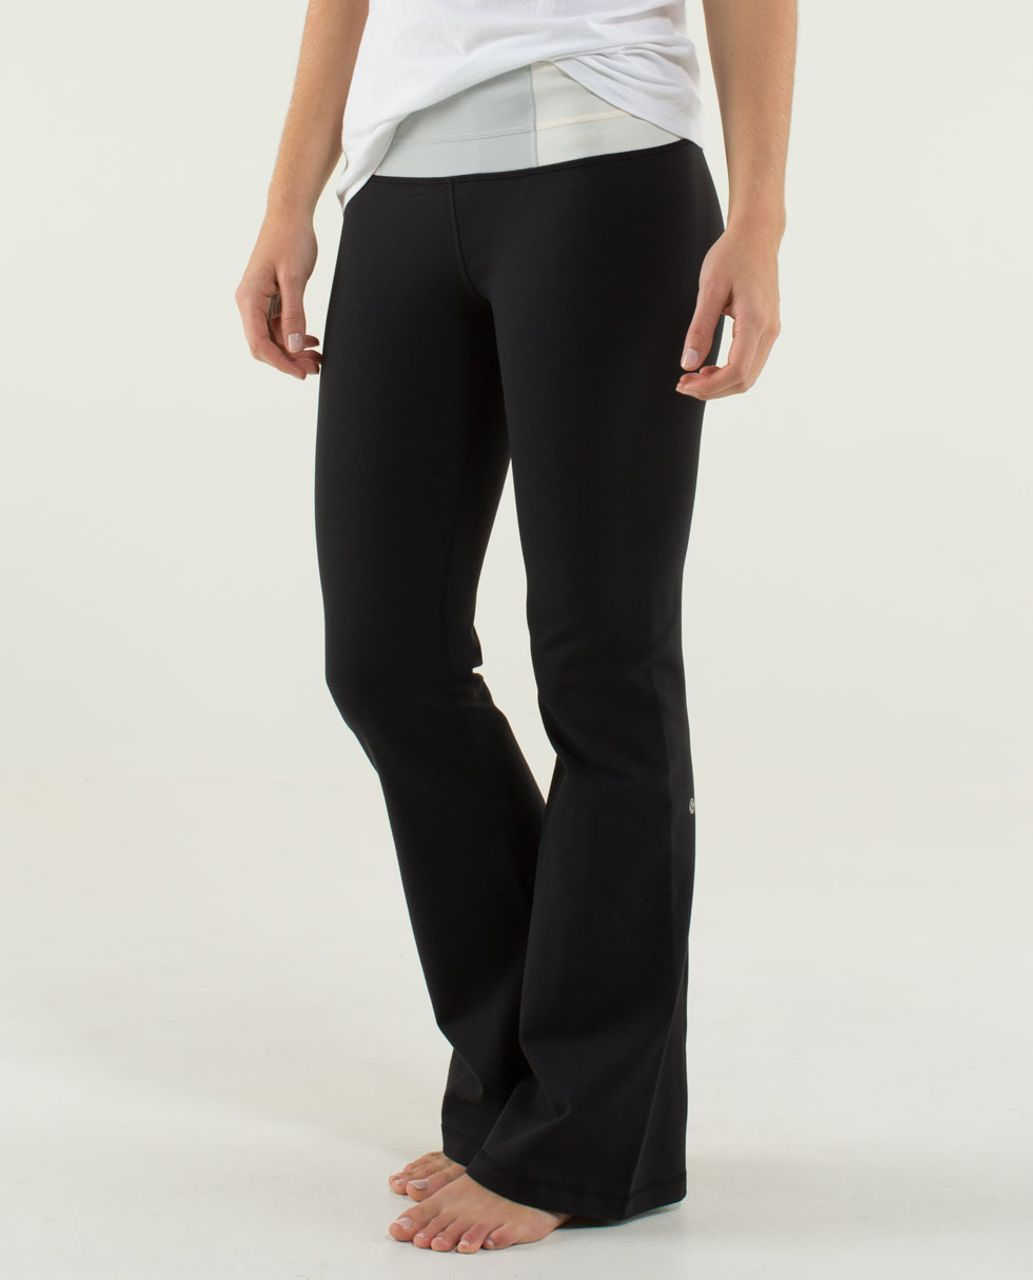 Lululemon Groove Pant (Tall) - Black / Quilt 13 Fall 2013